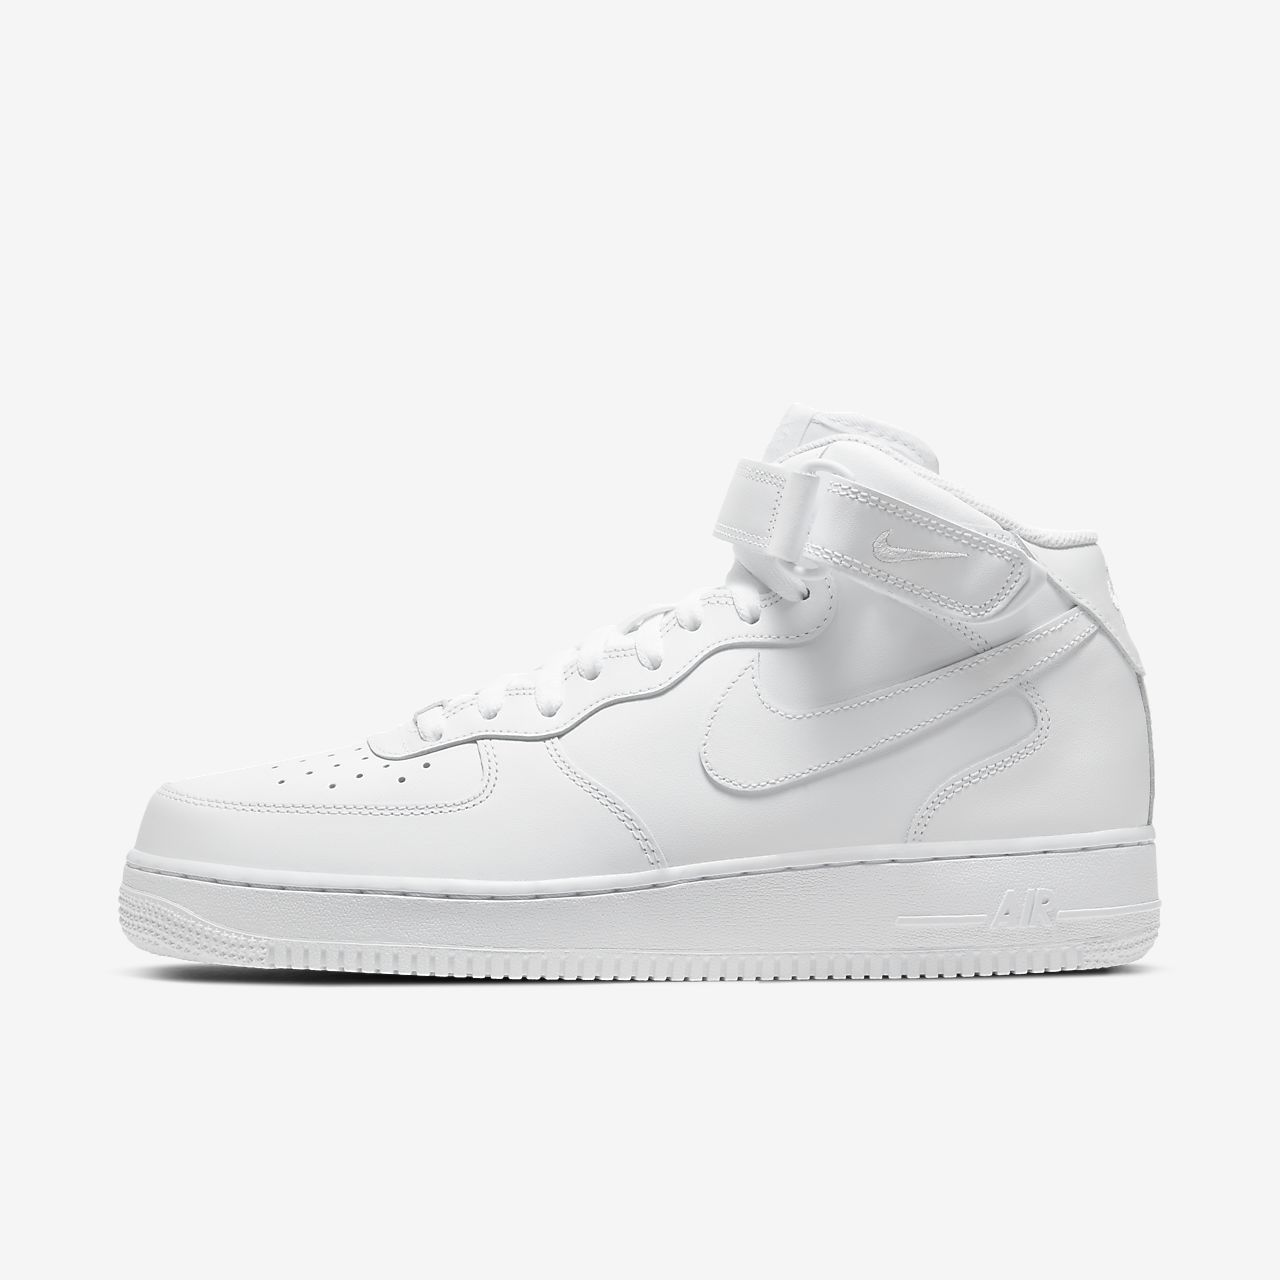 various colors 88258 66f39 ... Calzado para hombre Nike Air Force 1 Mid 07